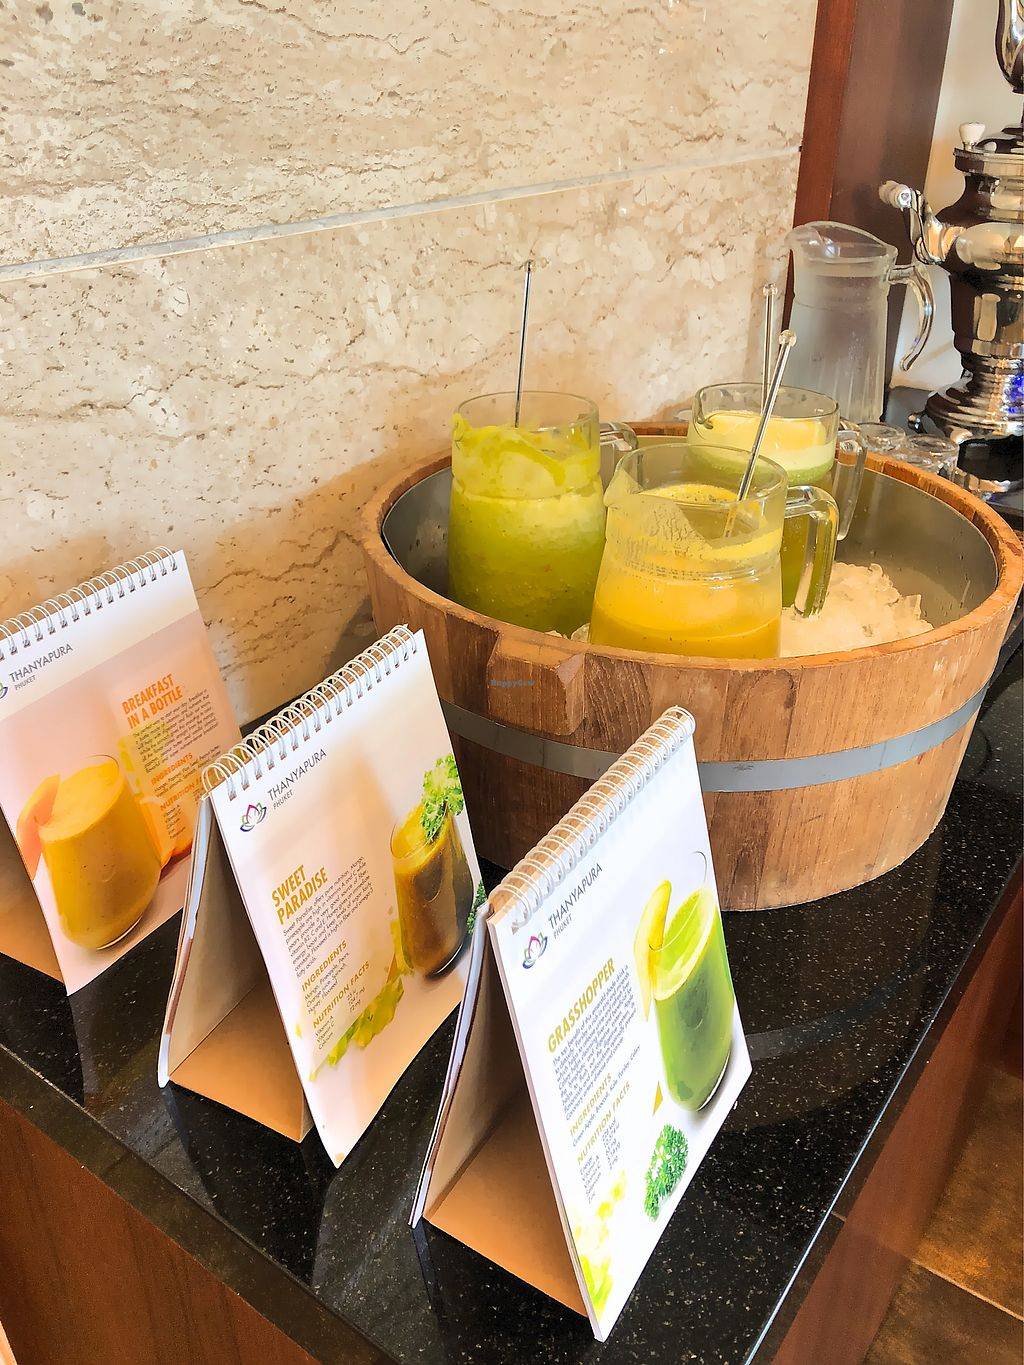 """Photo of DiLite Restaurant  by <a href=""""/members/profile/SoniaGivray"""">SoniaGivray</a> <br/>Cold pressed veggie ?  <br/> April 11, 2018  - <a href='/contact/abuse/image/104203/383703'>Report</a>"""